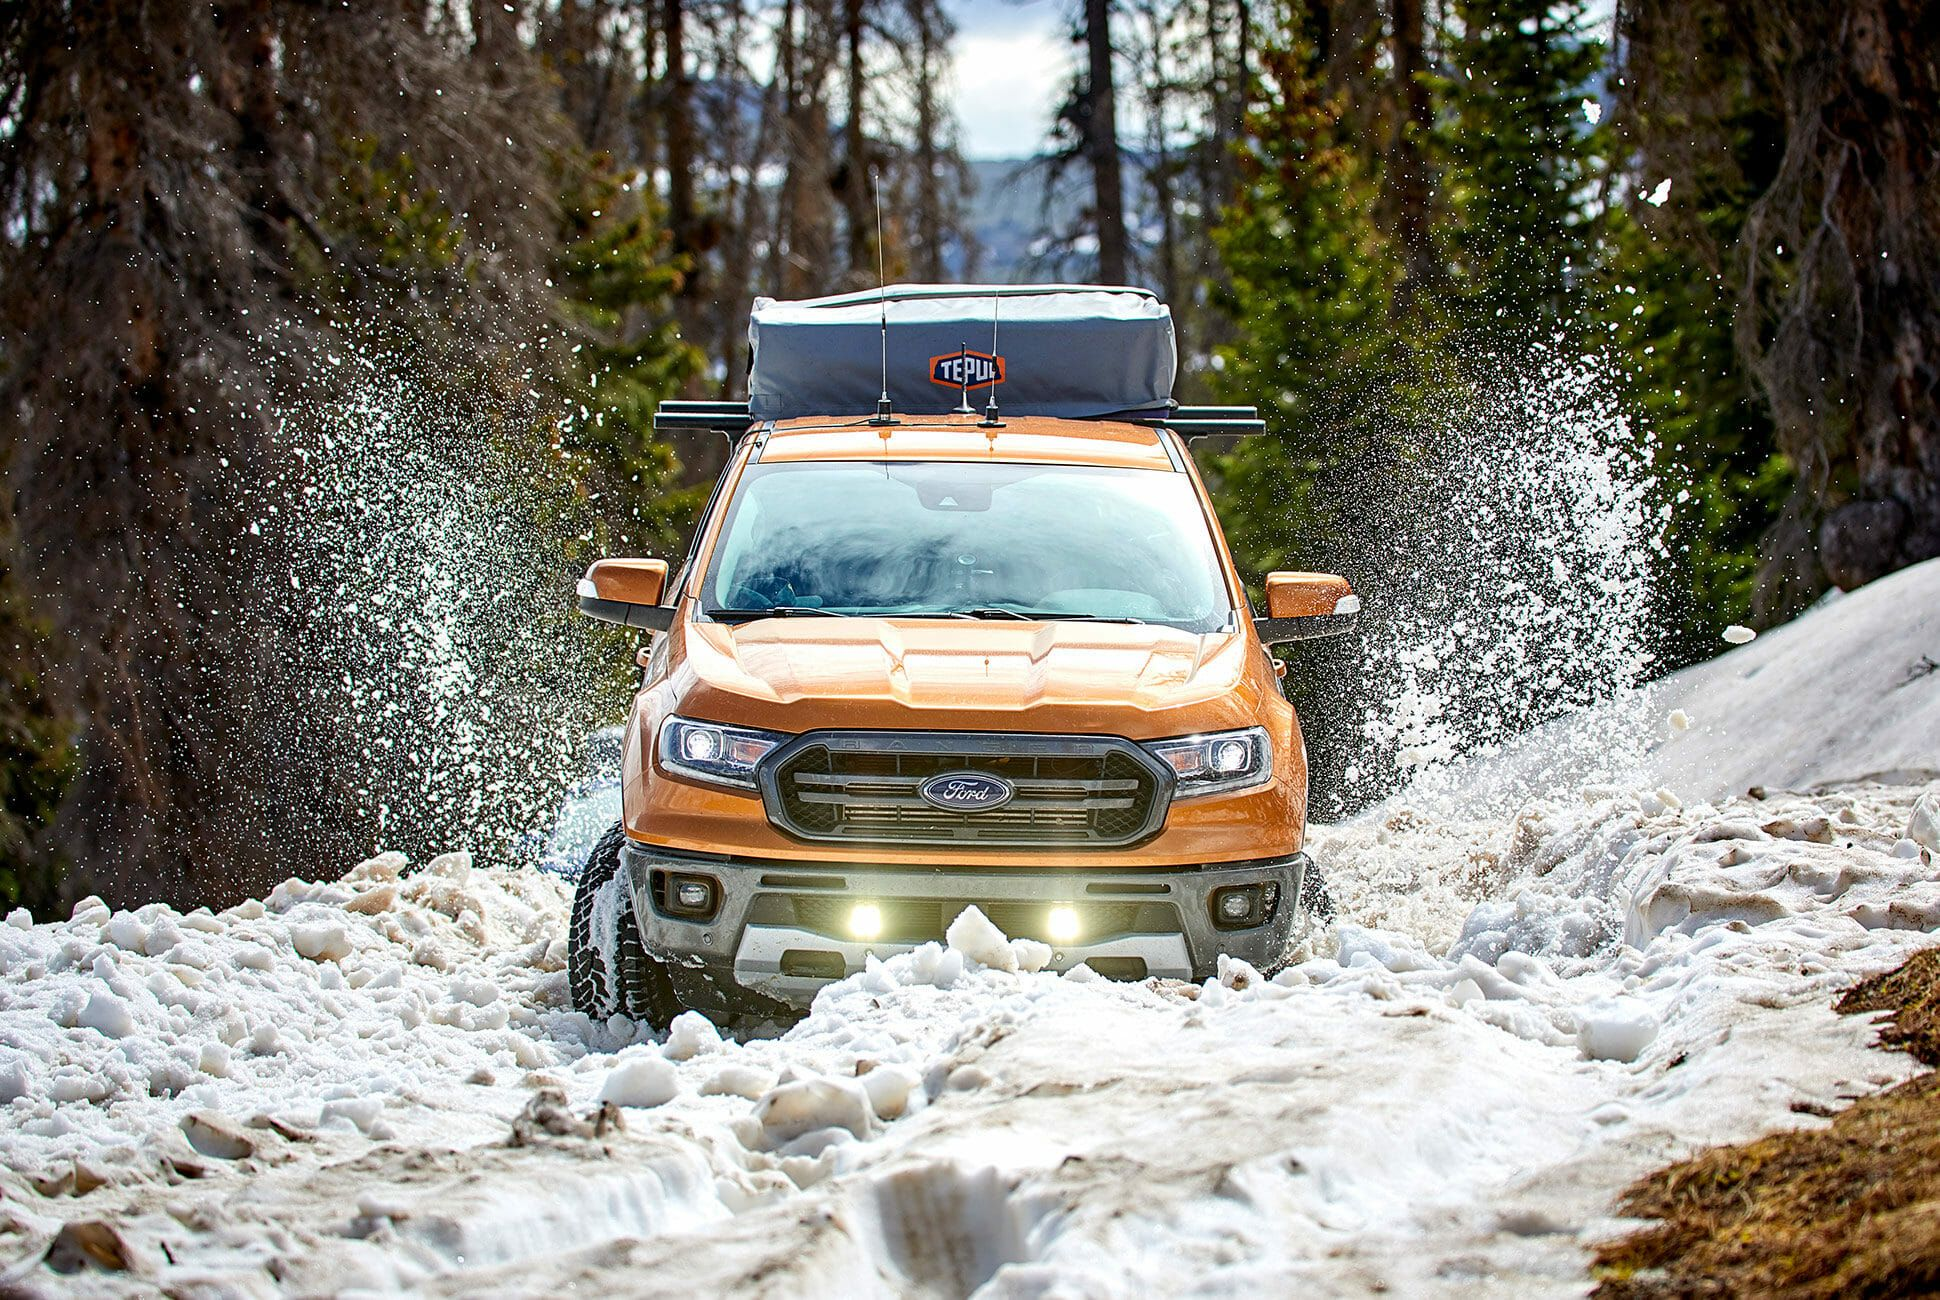 The Trials and Triumphs of Overlanding Across America in